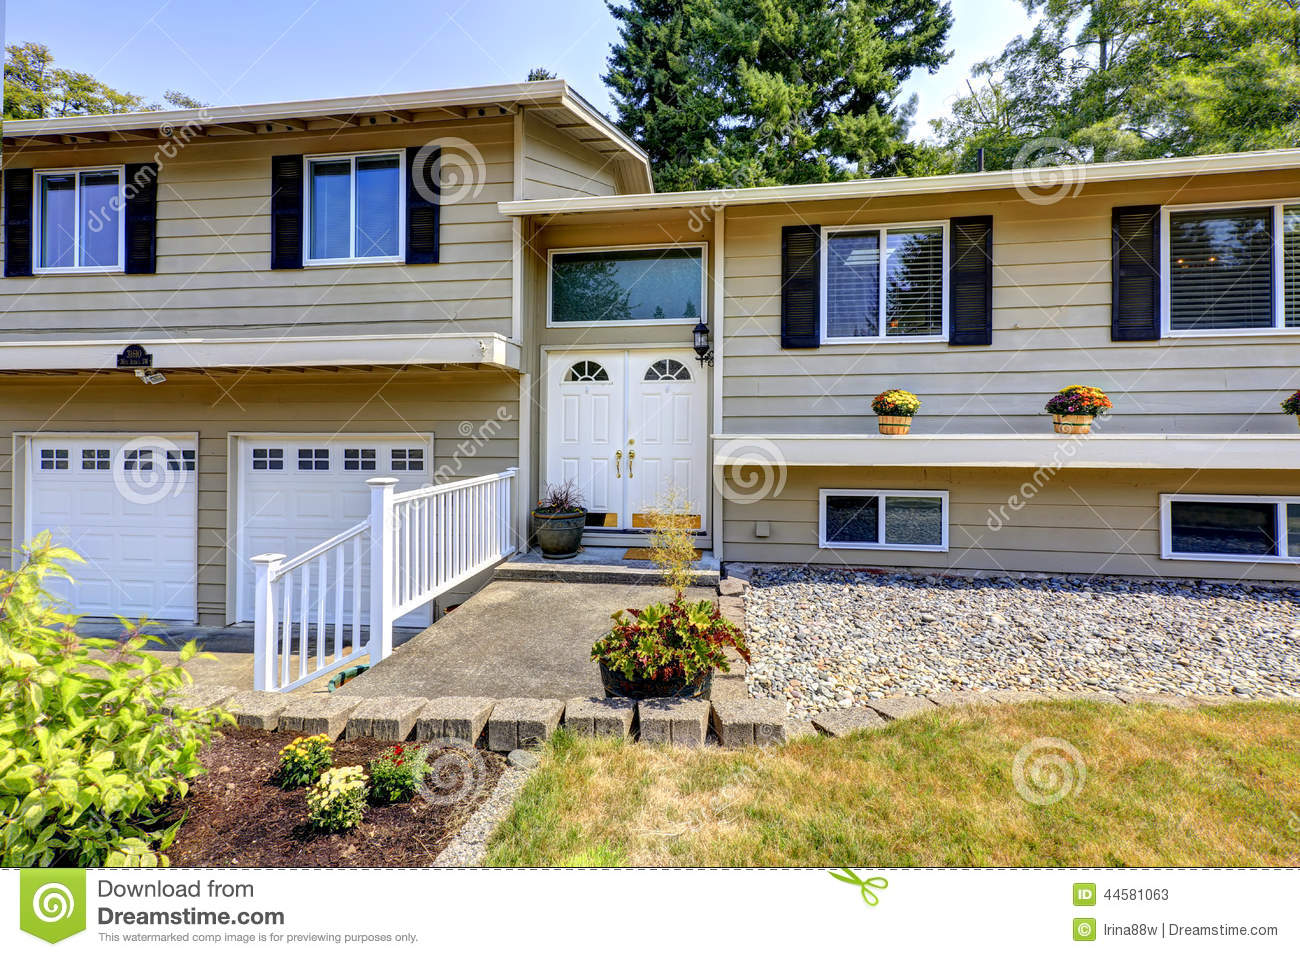 House Exterior In Federal Way Wa Stock Photo Image